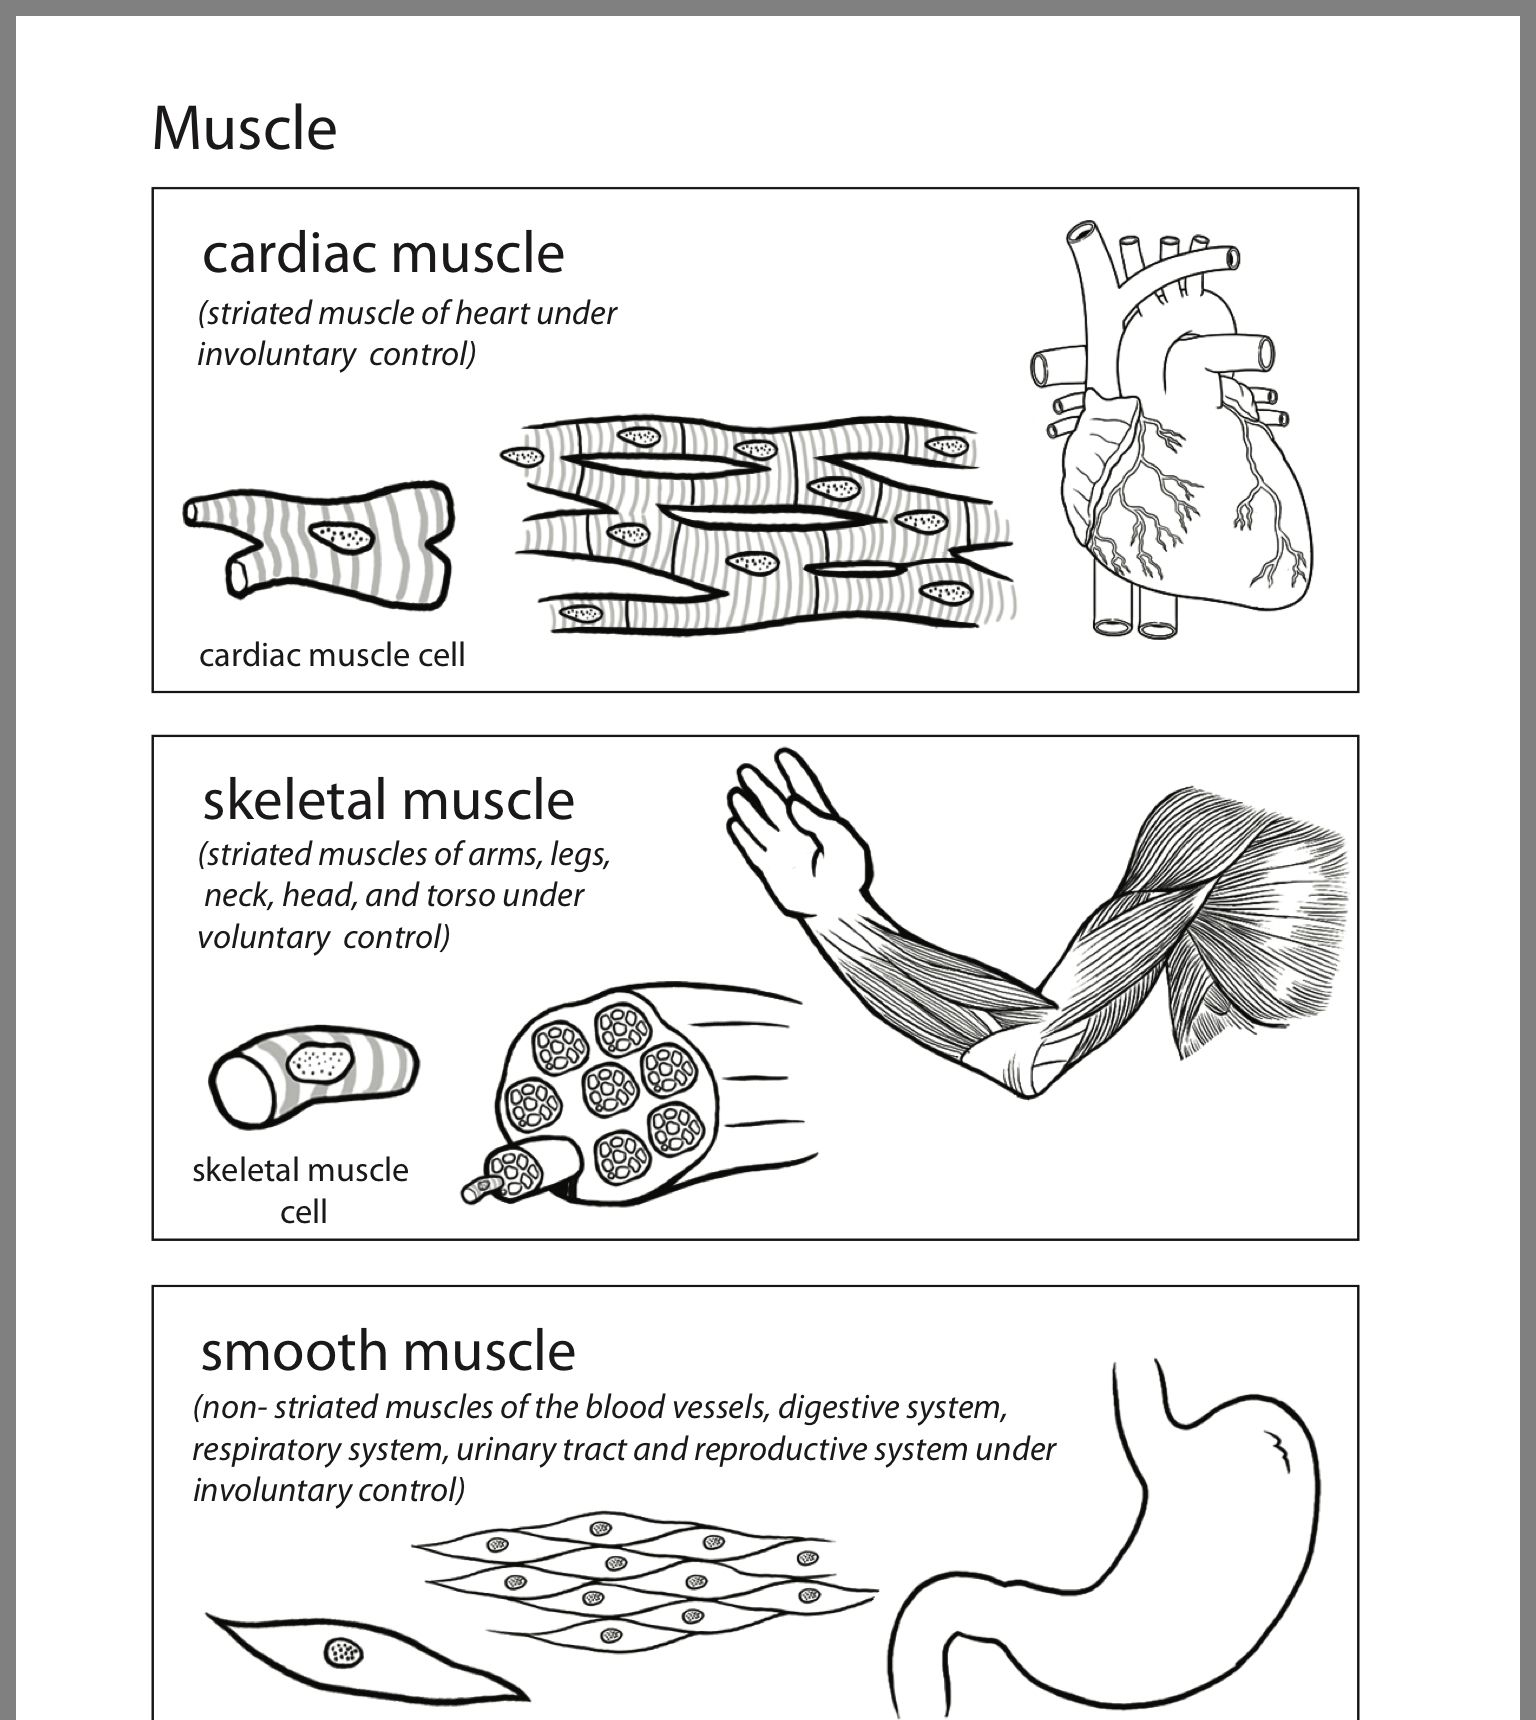 Inside Out Anatomy Muscles Worksheet Education Com Cardiac Muscle Cell Education Com Reproductive System